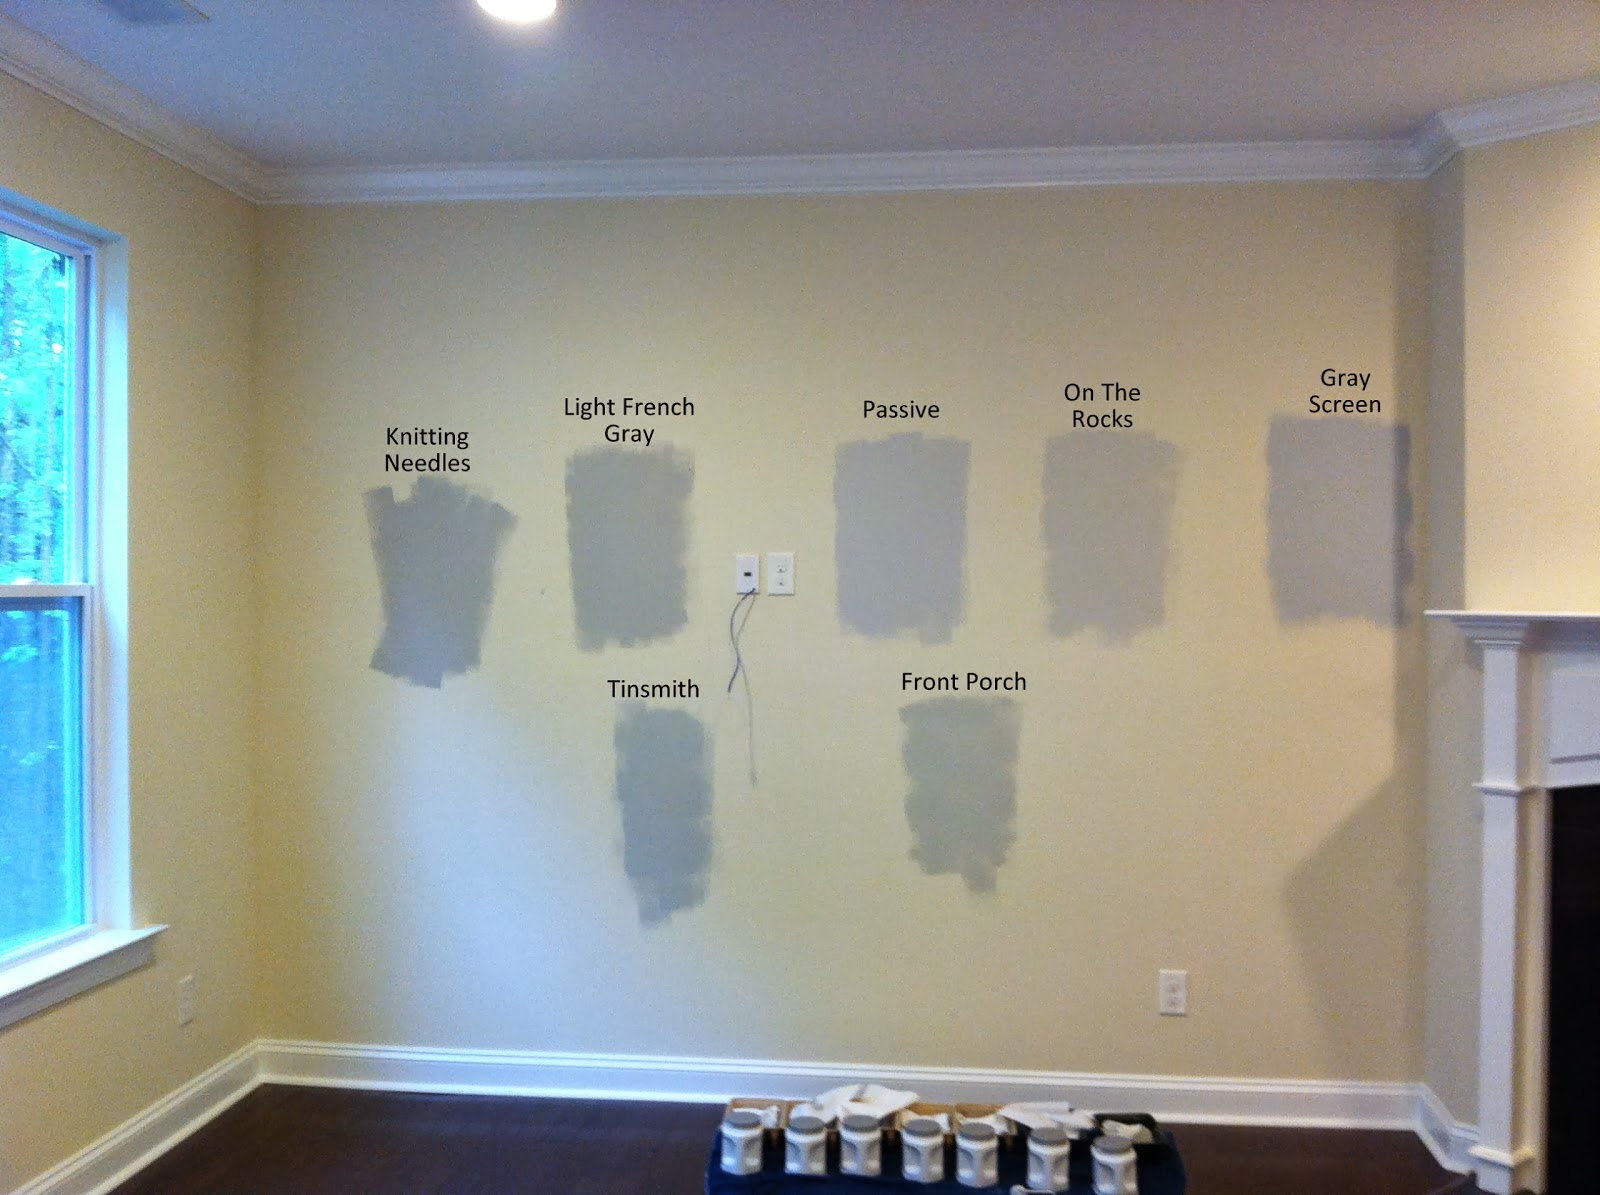 Shades of gray paint laforce be with you Shades of grey interior paint